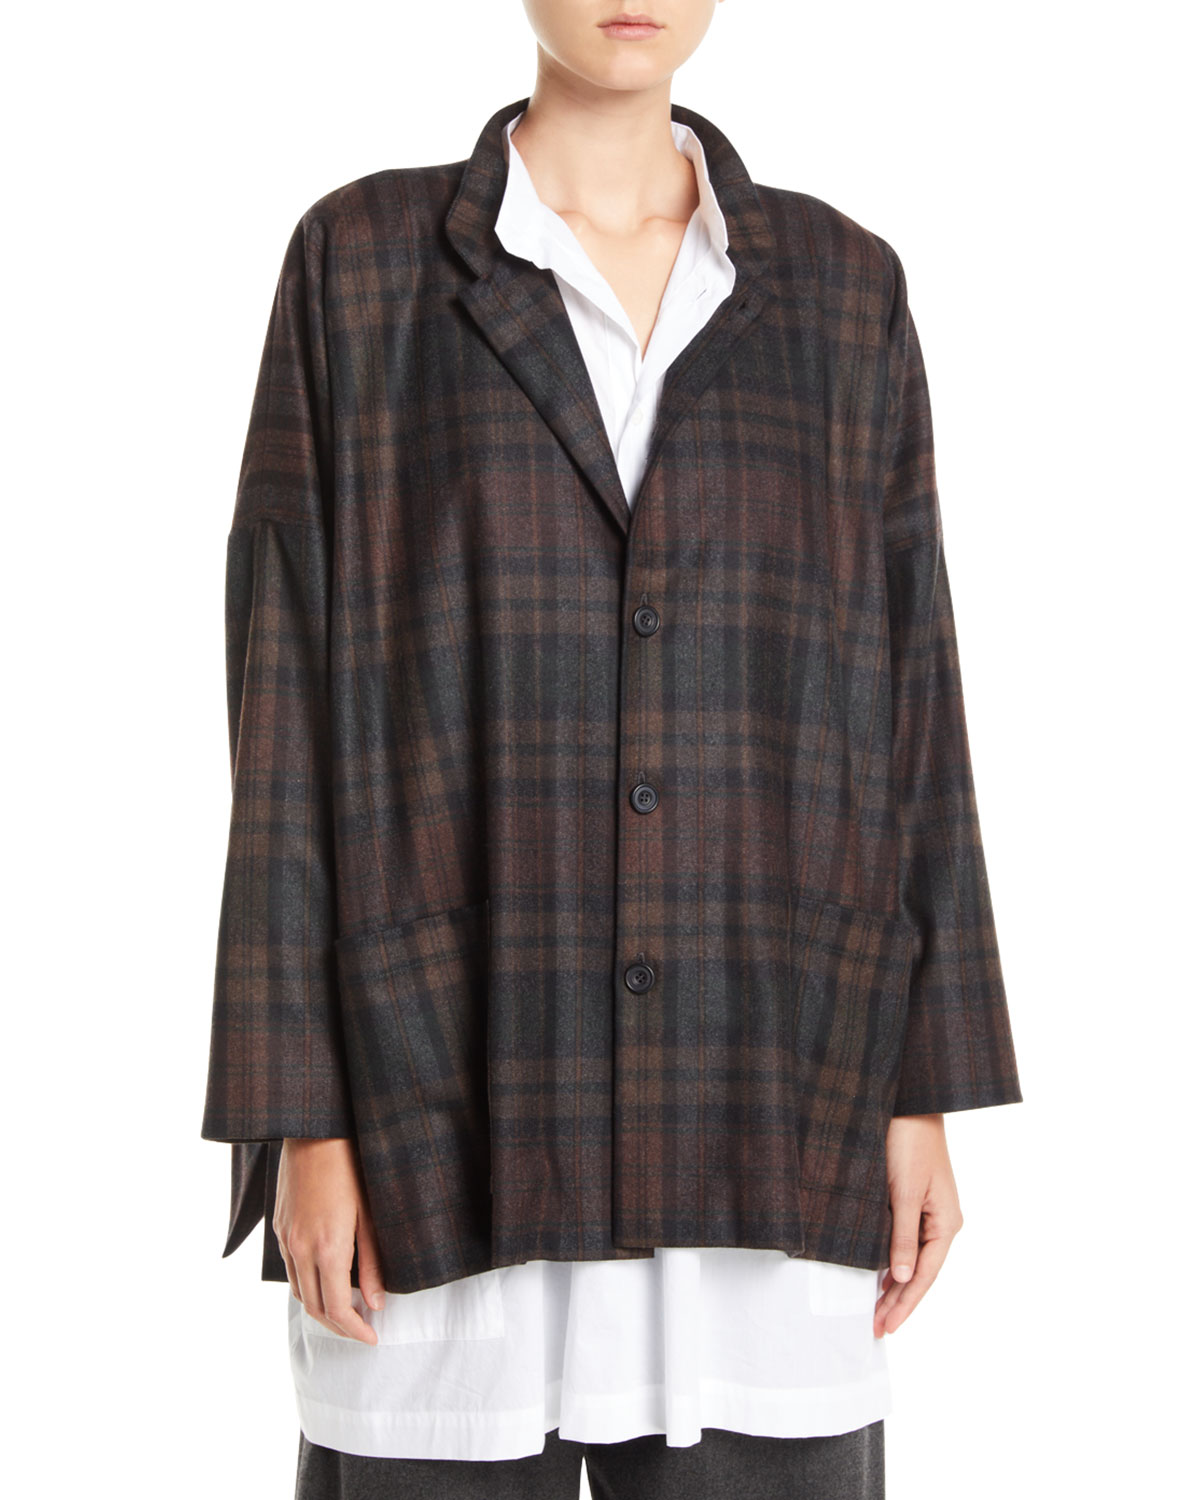 ESKANDAR WIDE MANDARIN-COLLAR PLAID WOOL-ANGORA JACKET